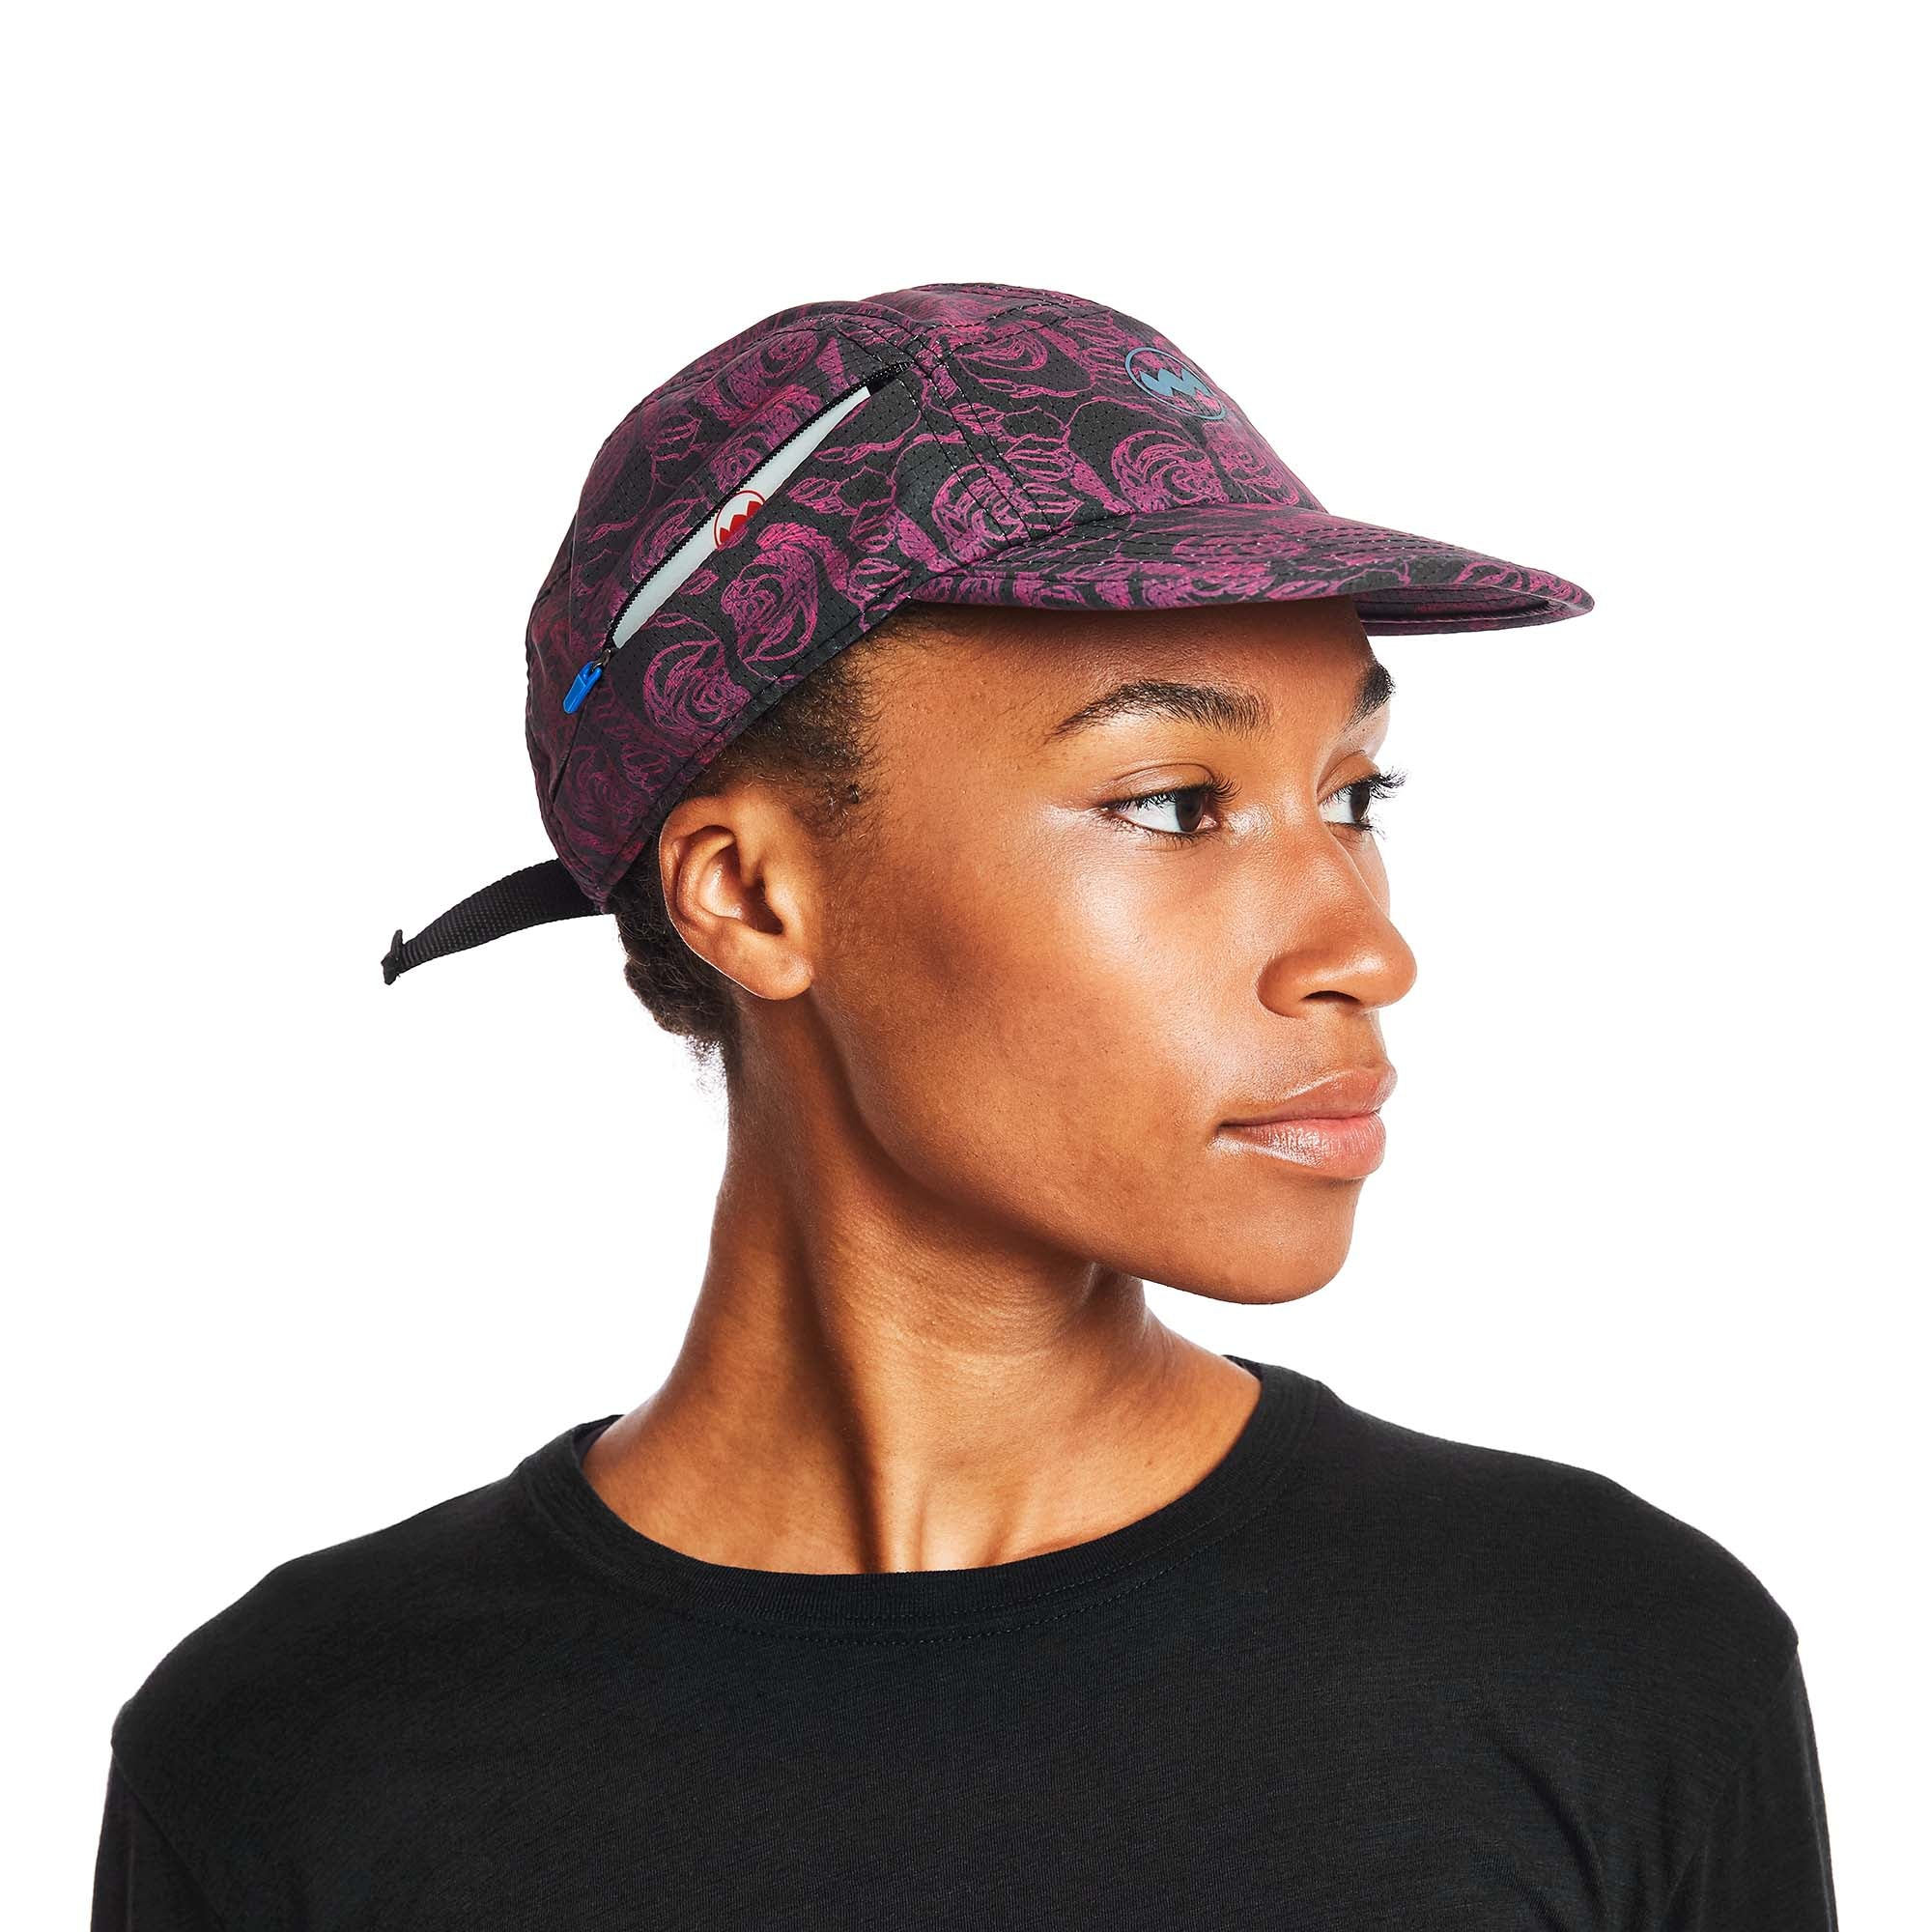 AVR [Re]Run Cap in Floral Lace